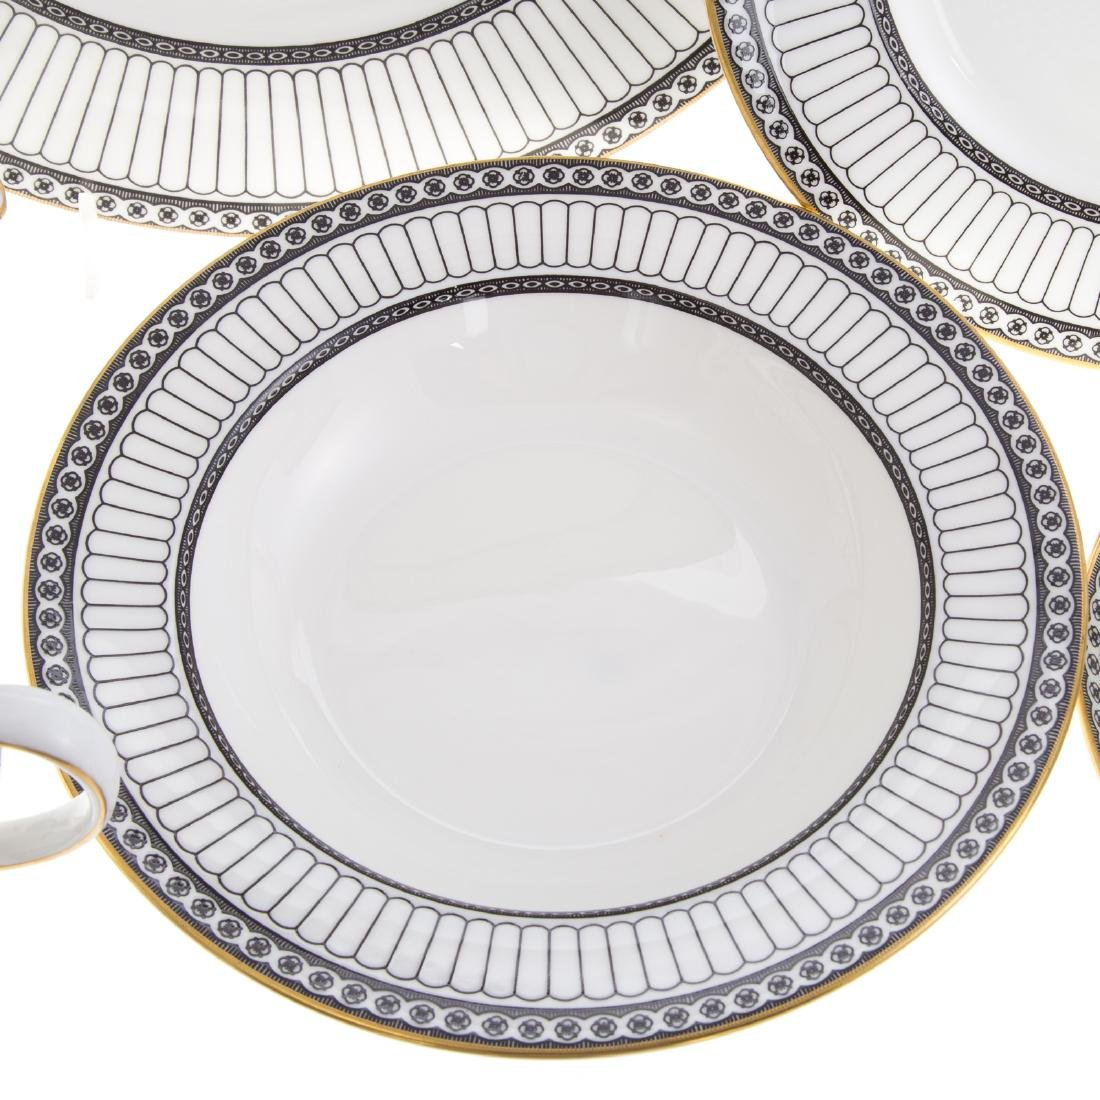 Wedgwood china partial dinner service - 2